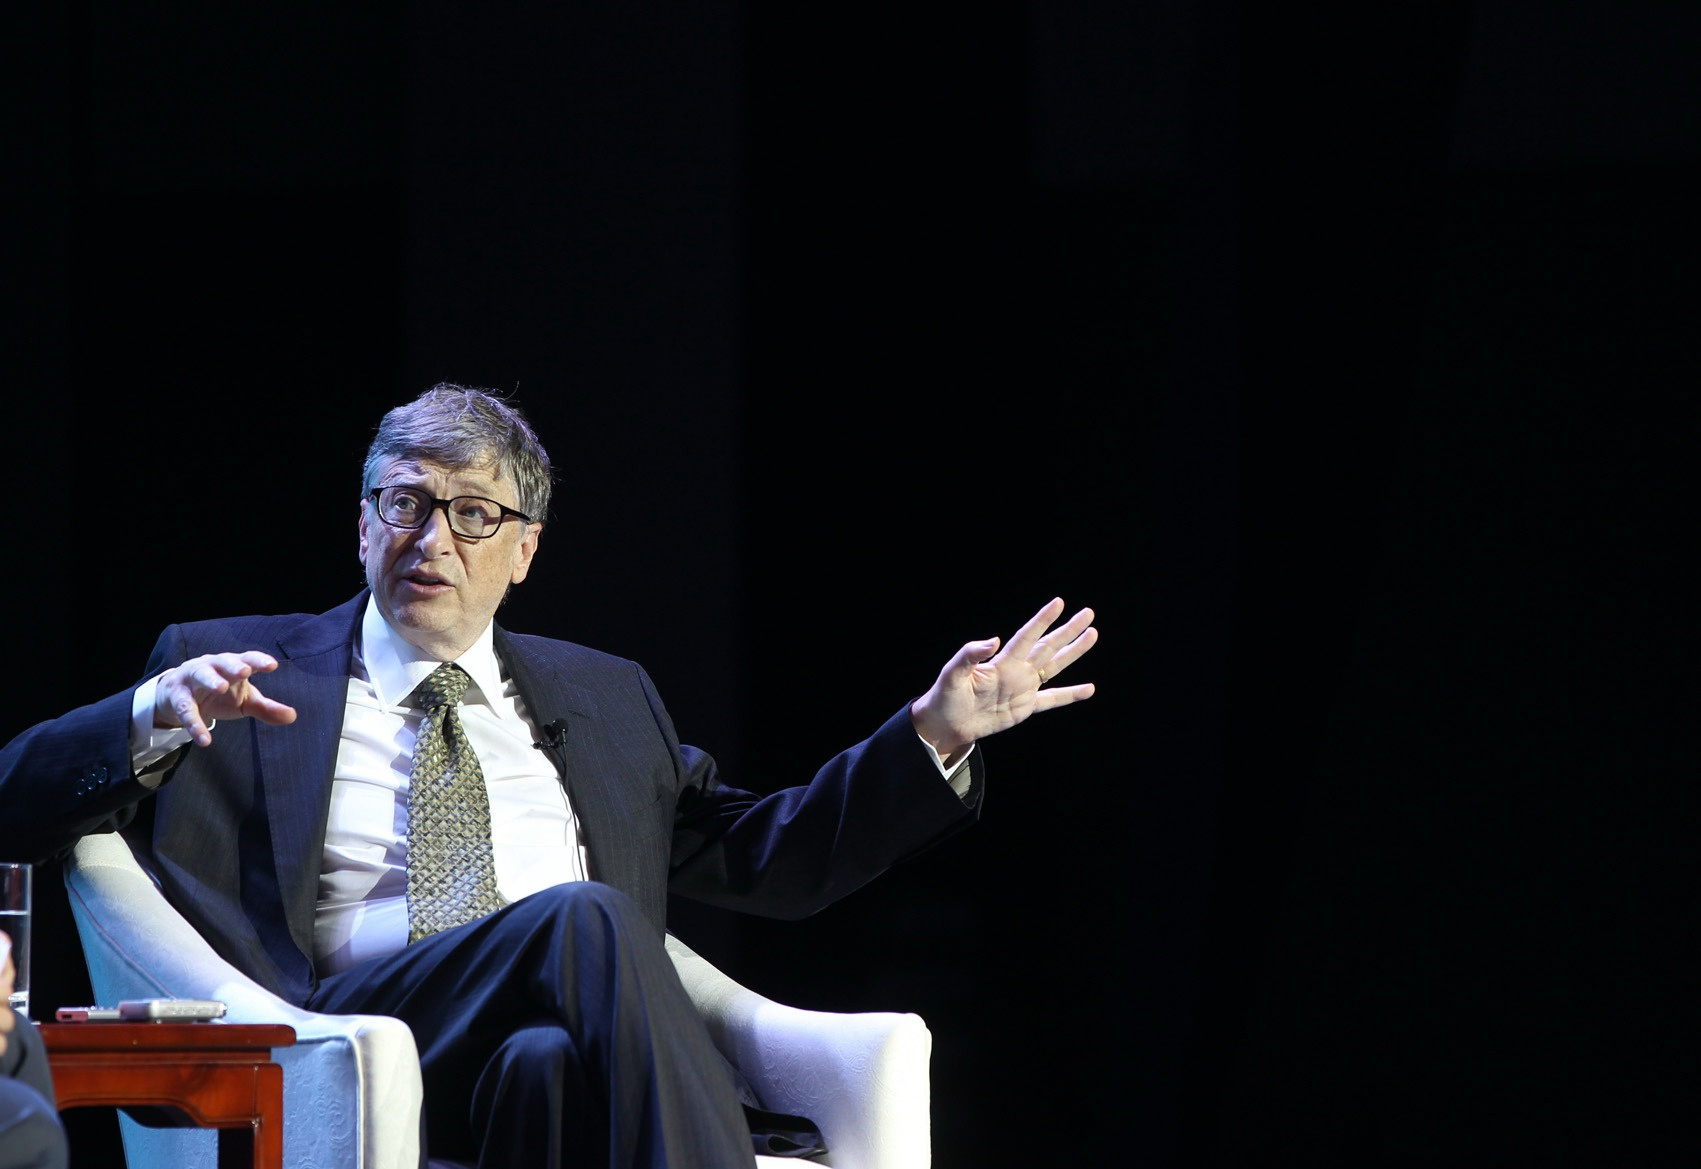 Bill Gates Attends Boao Forum In Qionghai